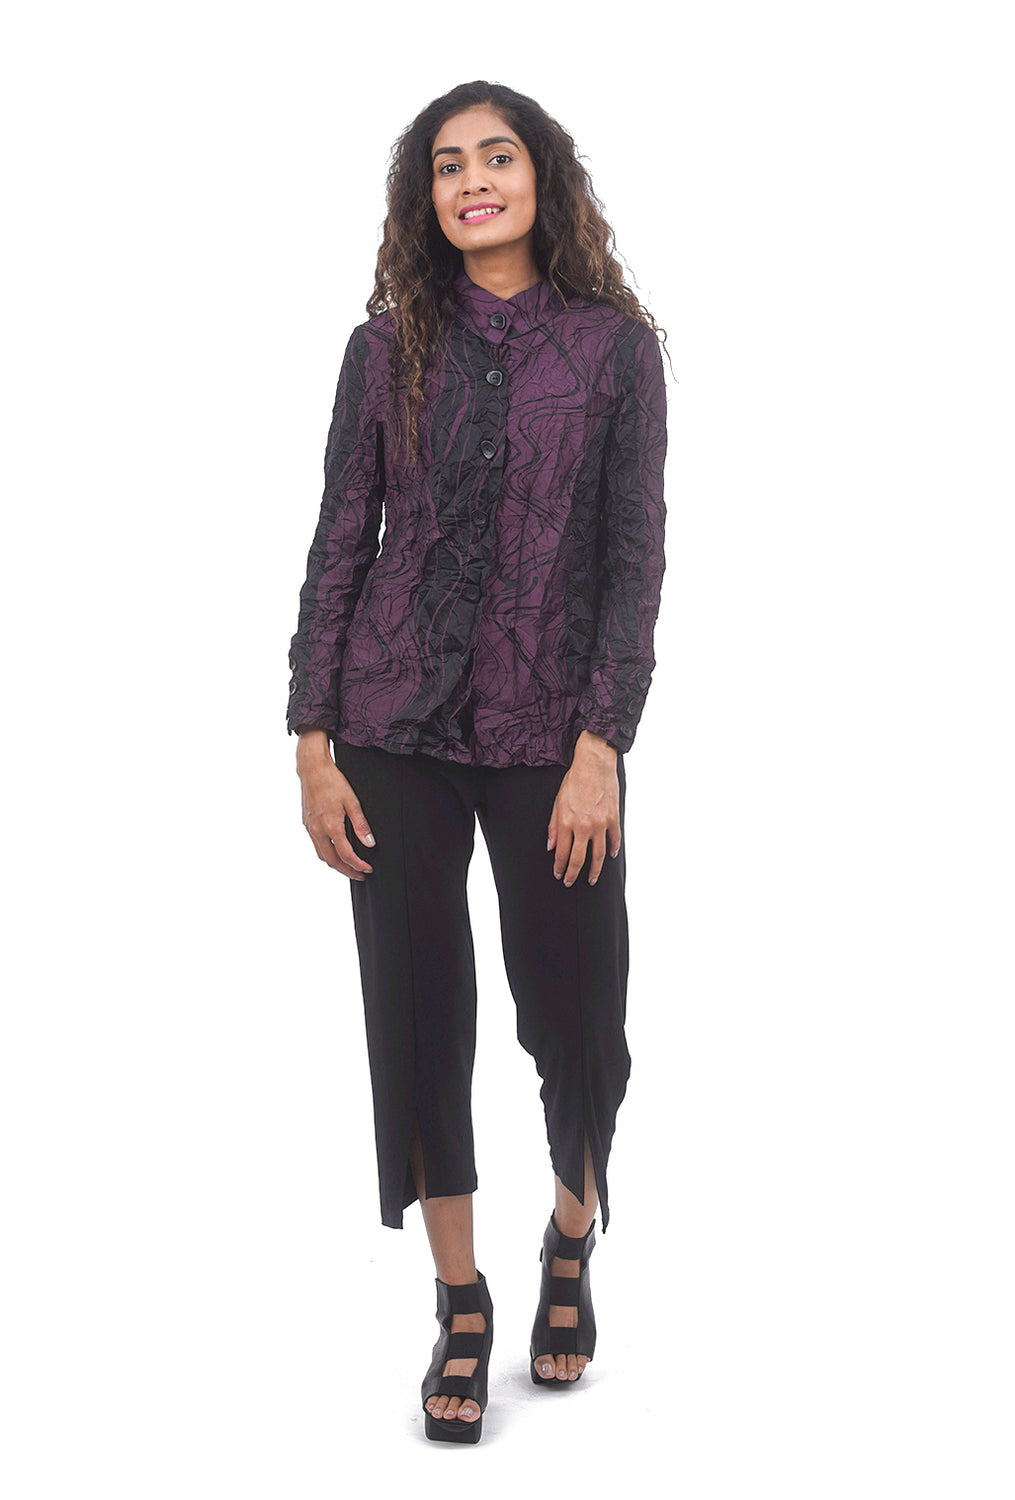 Scrunch Print Girlfriend Shirt, Plum